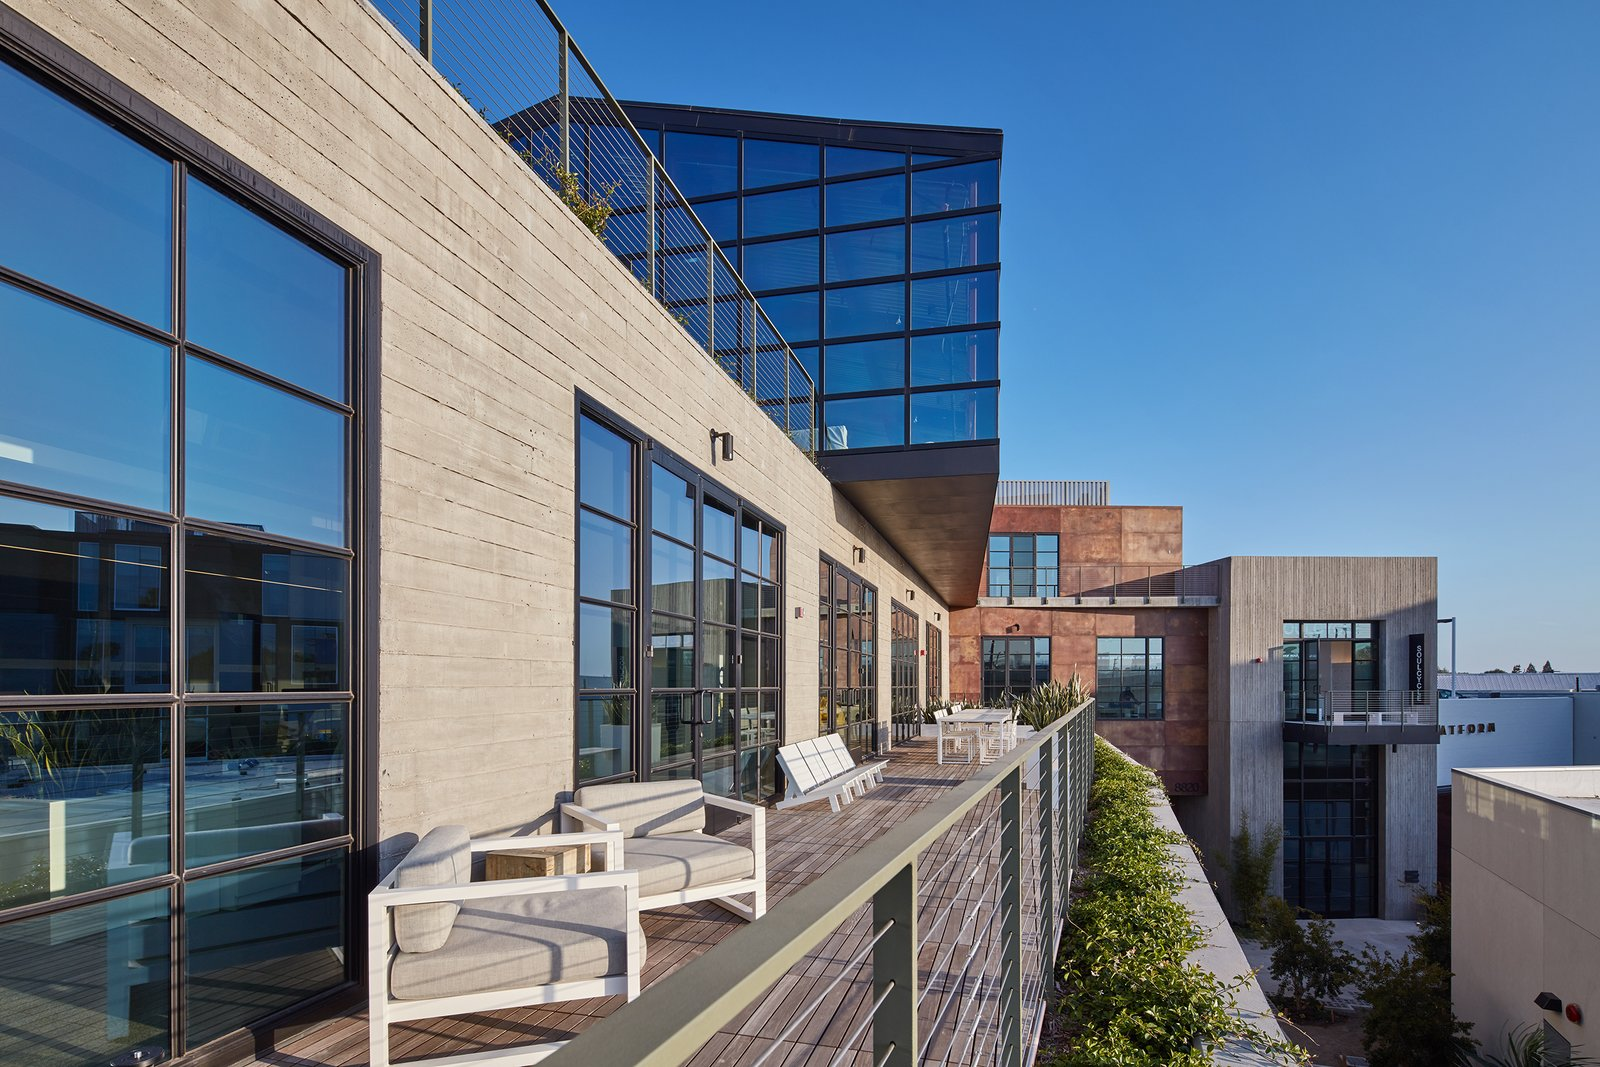 The design of the event space on the top floor was inspired by a greenhouse.  If you think about the abandoned box car site, you can also picture that over time, plants began to grow over.  The greenhouse space is a reinvention of this concept, represented in a form that houses a physical space.    PLATFORM by Abramson Teiger Architects